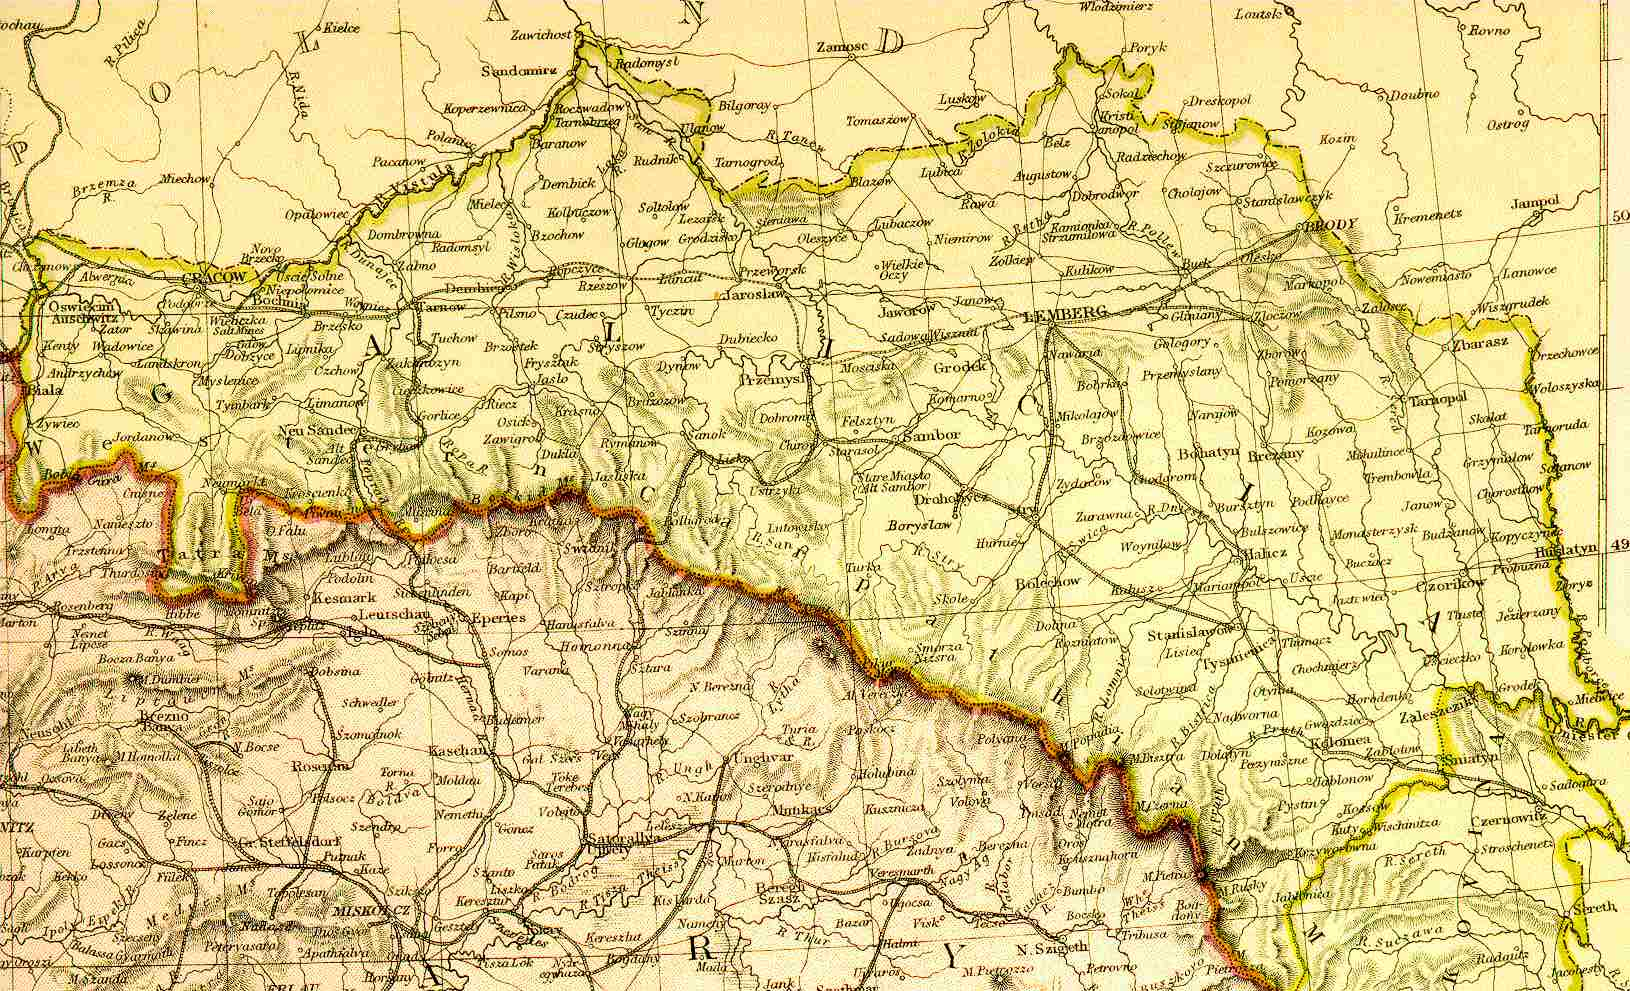 Map of Galicia, now split between modern Poland and Ukraine